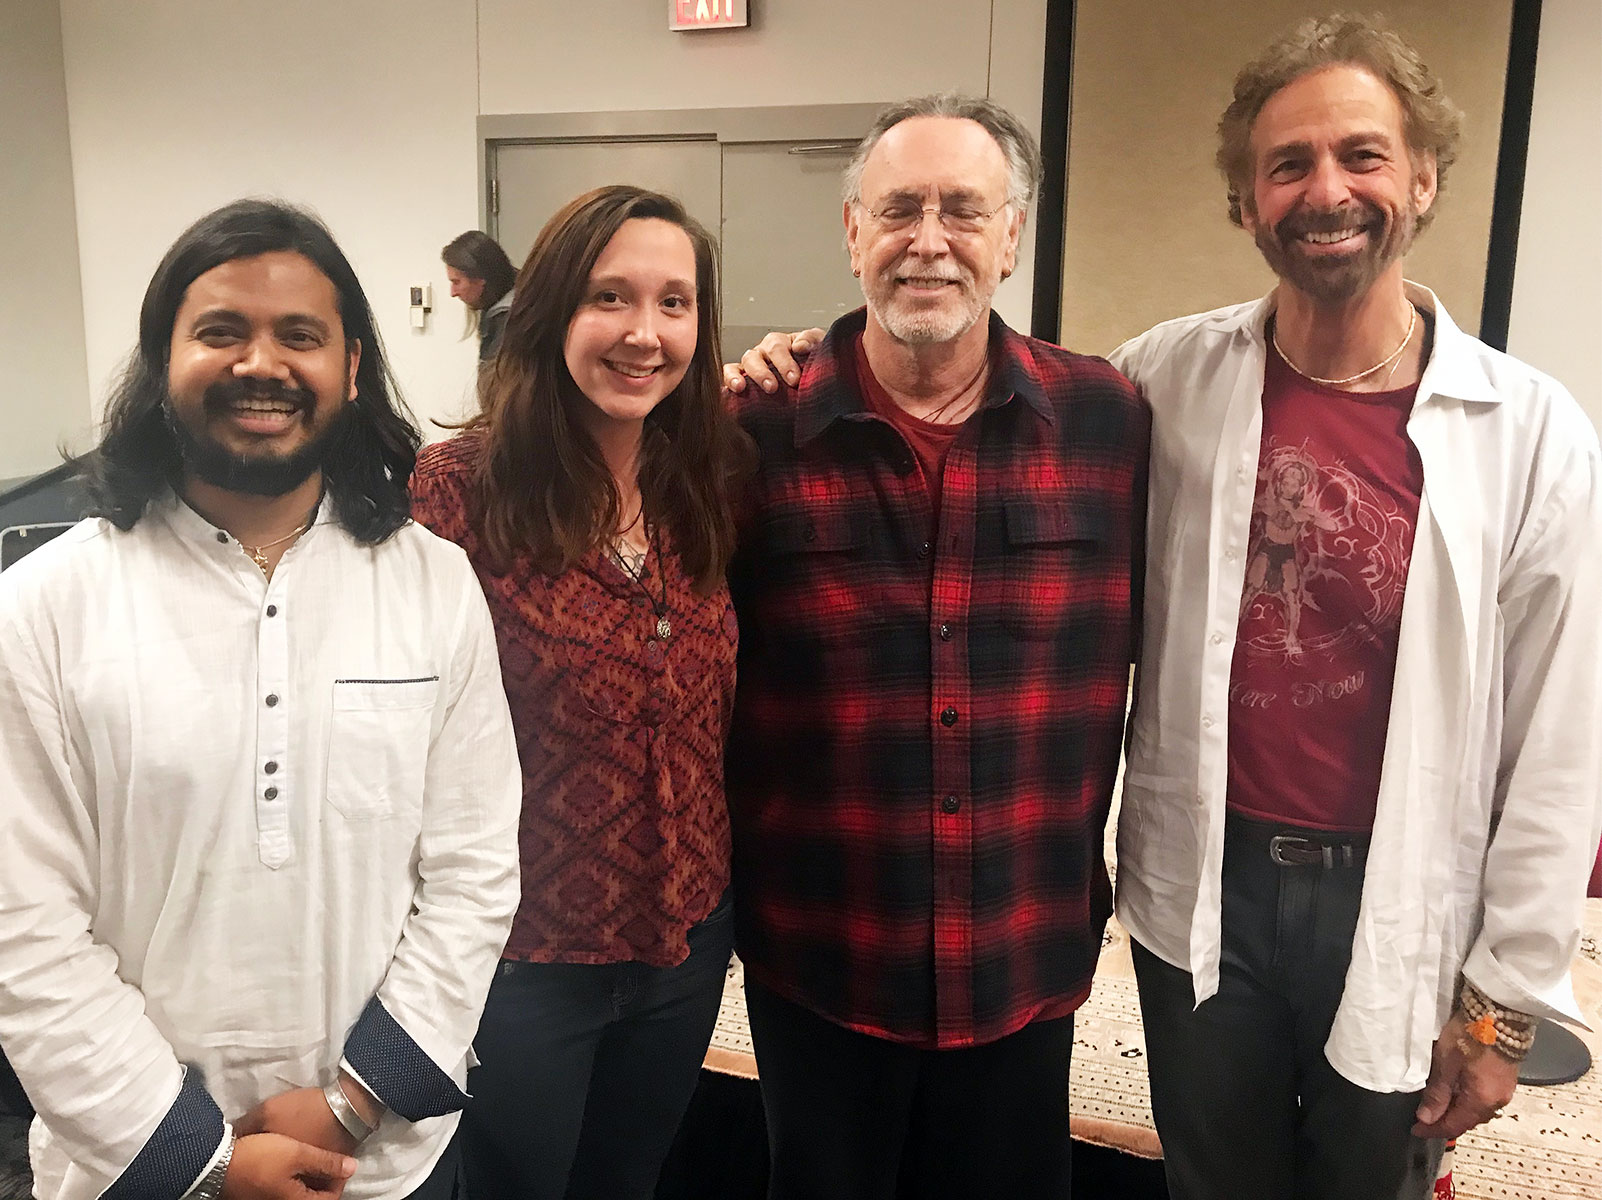 Earlier this year,  Yatra: The Documentary  producer Charly Louise (center-left) and Krishna Das (center-right) connected in Cleveland alongside Yatra medical mission volunteers Dr. Dayaprasad G. Kulkarni and Dr. Rick Friers.